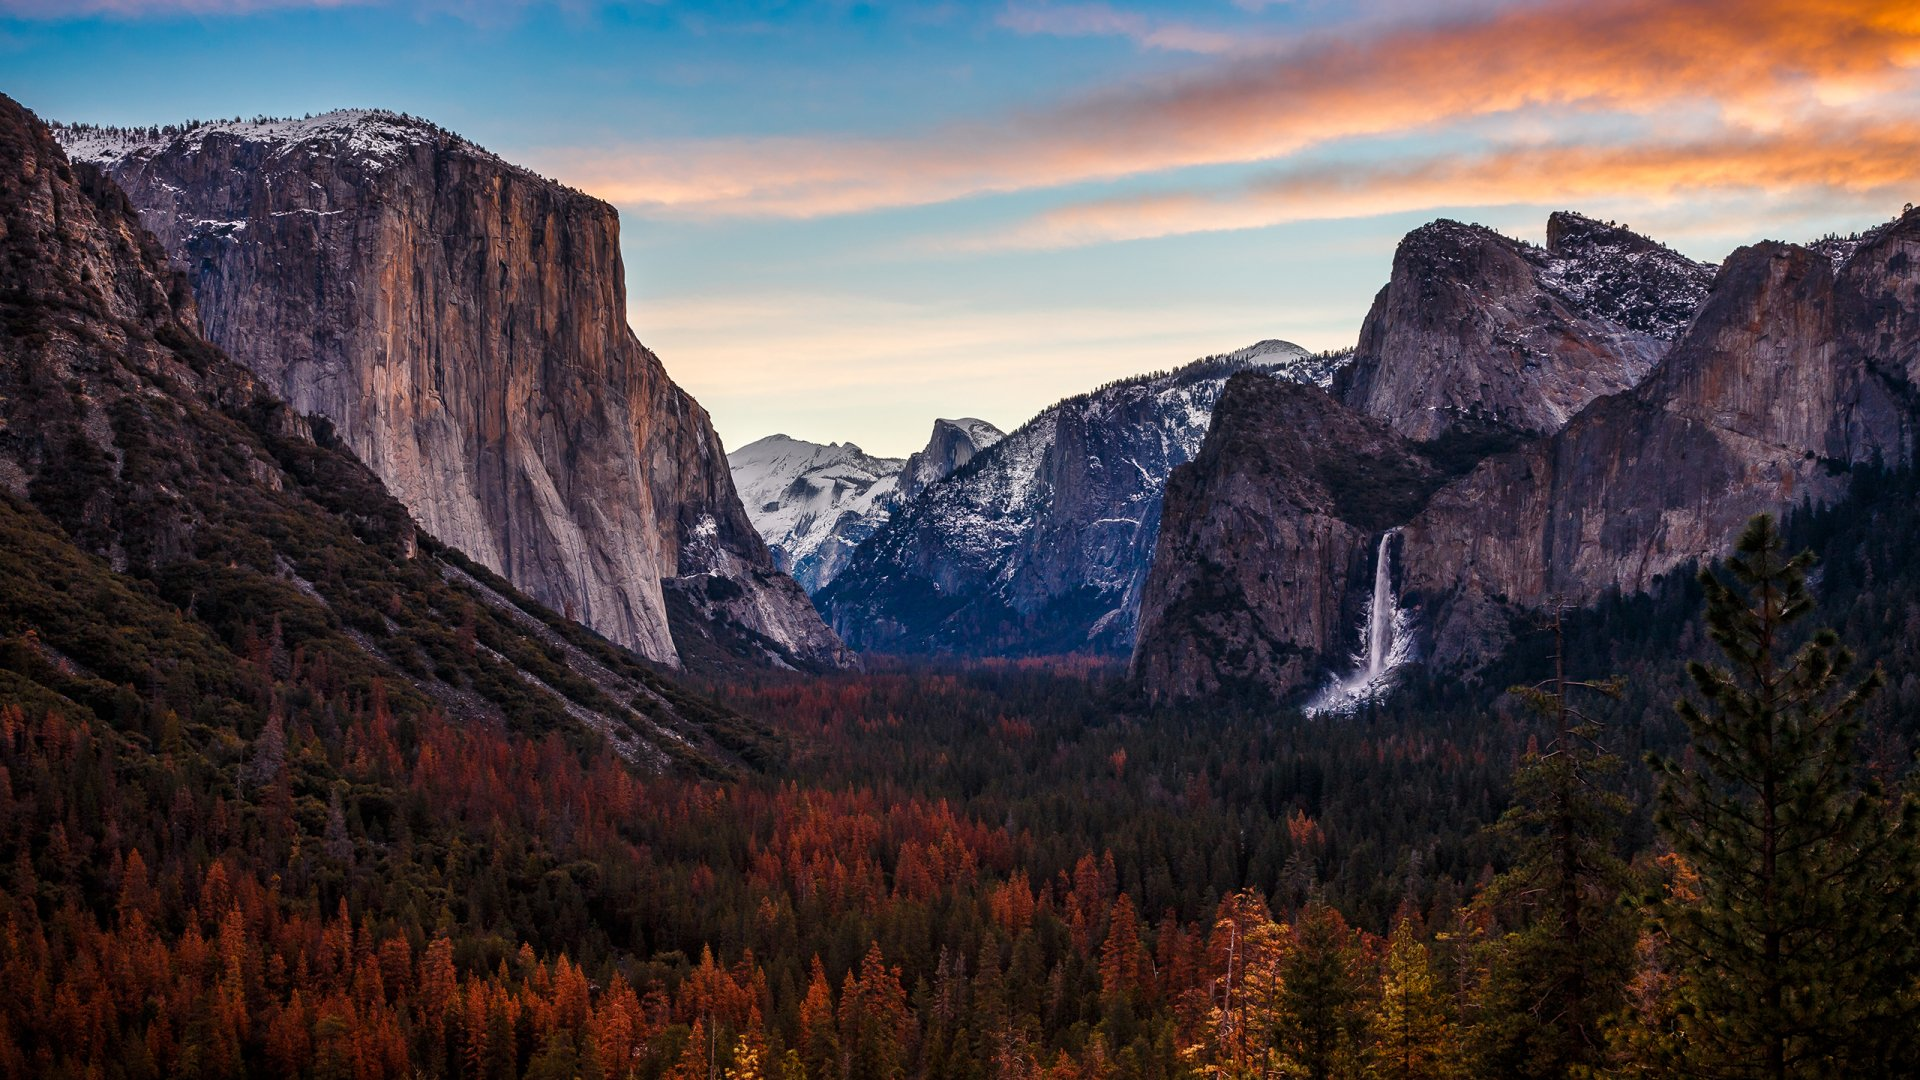 Autumn at yosmite national park hd wallpaper background - Yosemite national park hd wallpaper ...